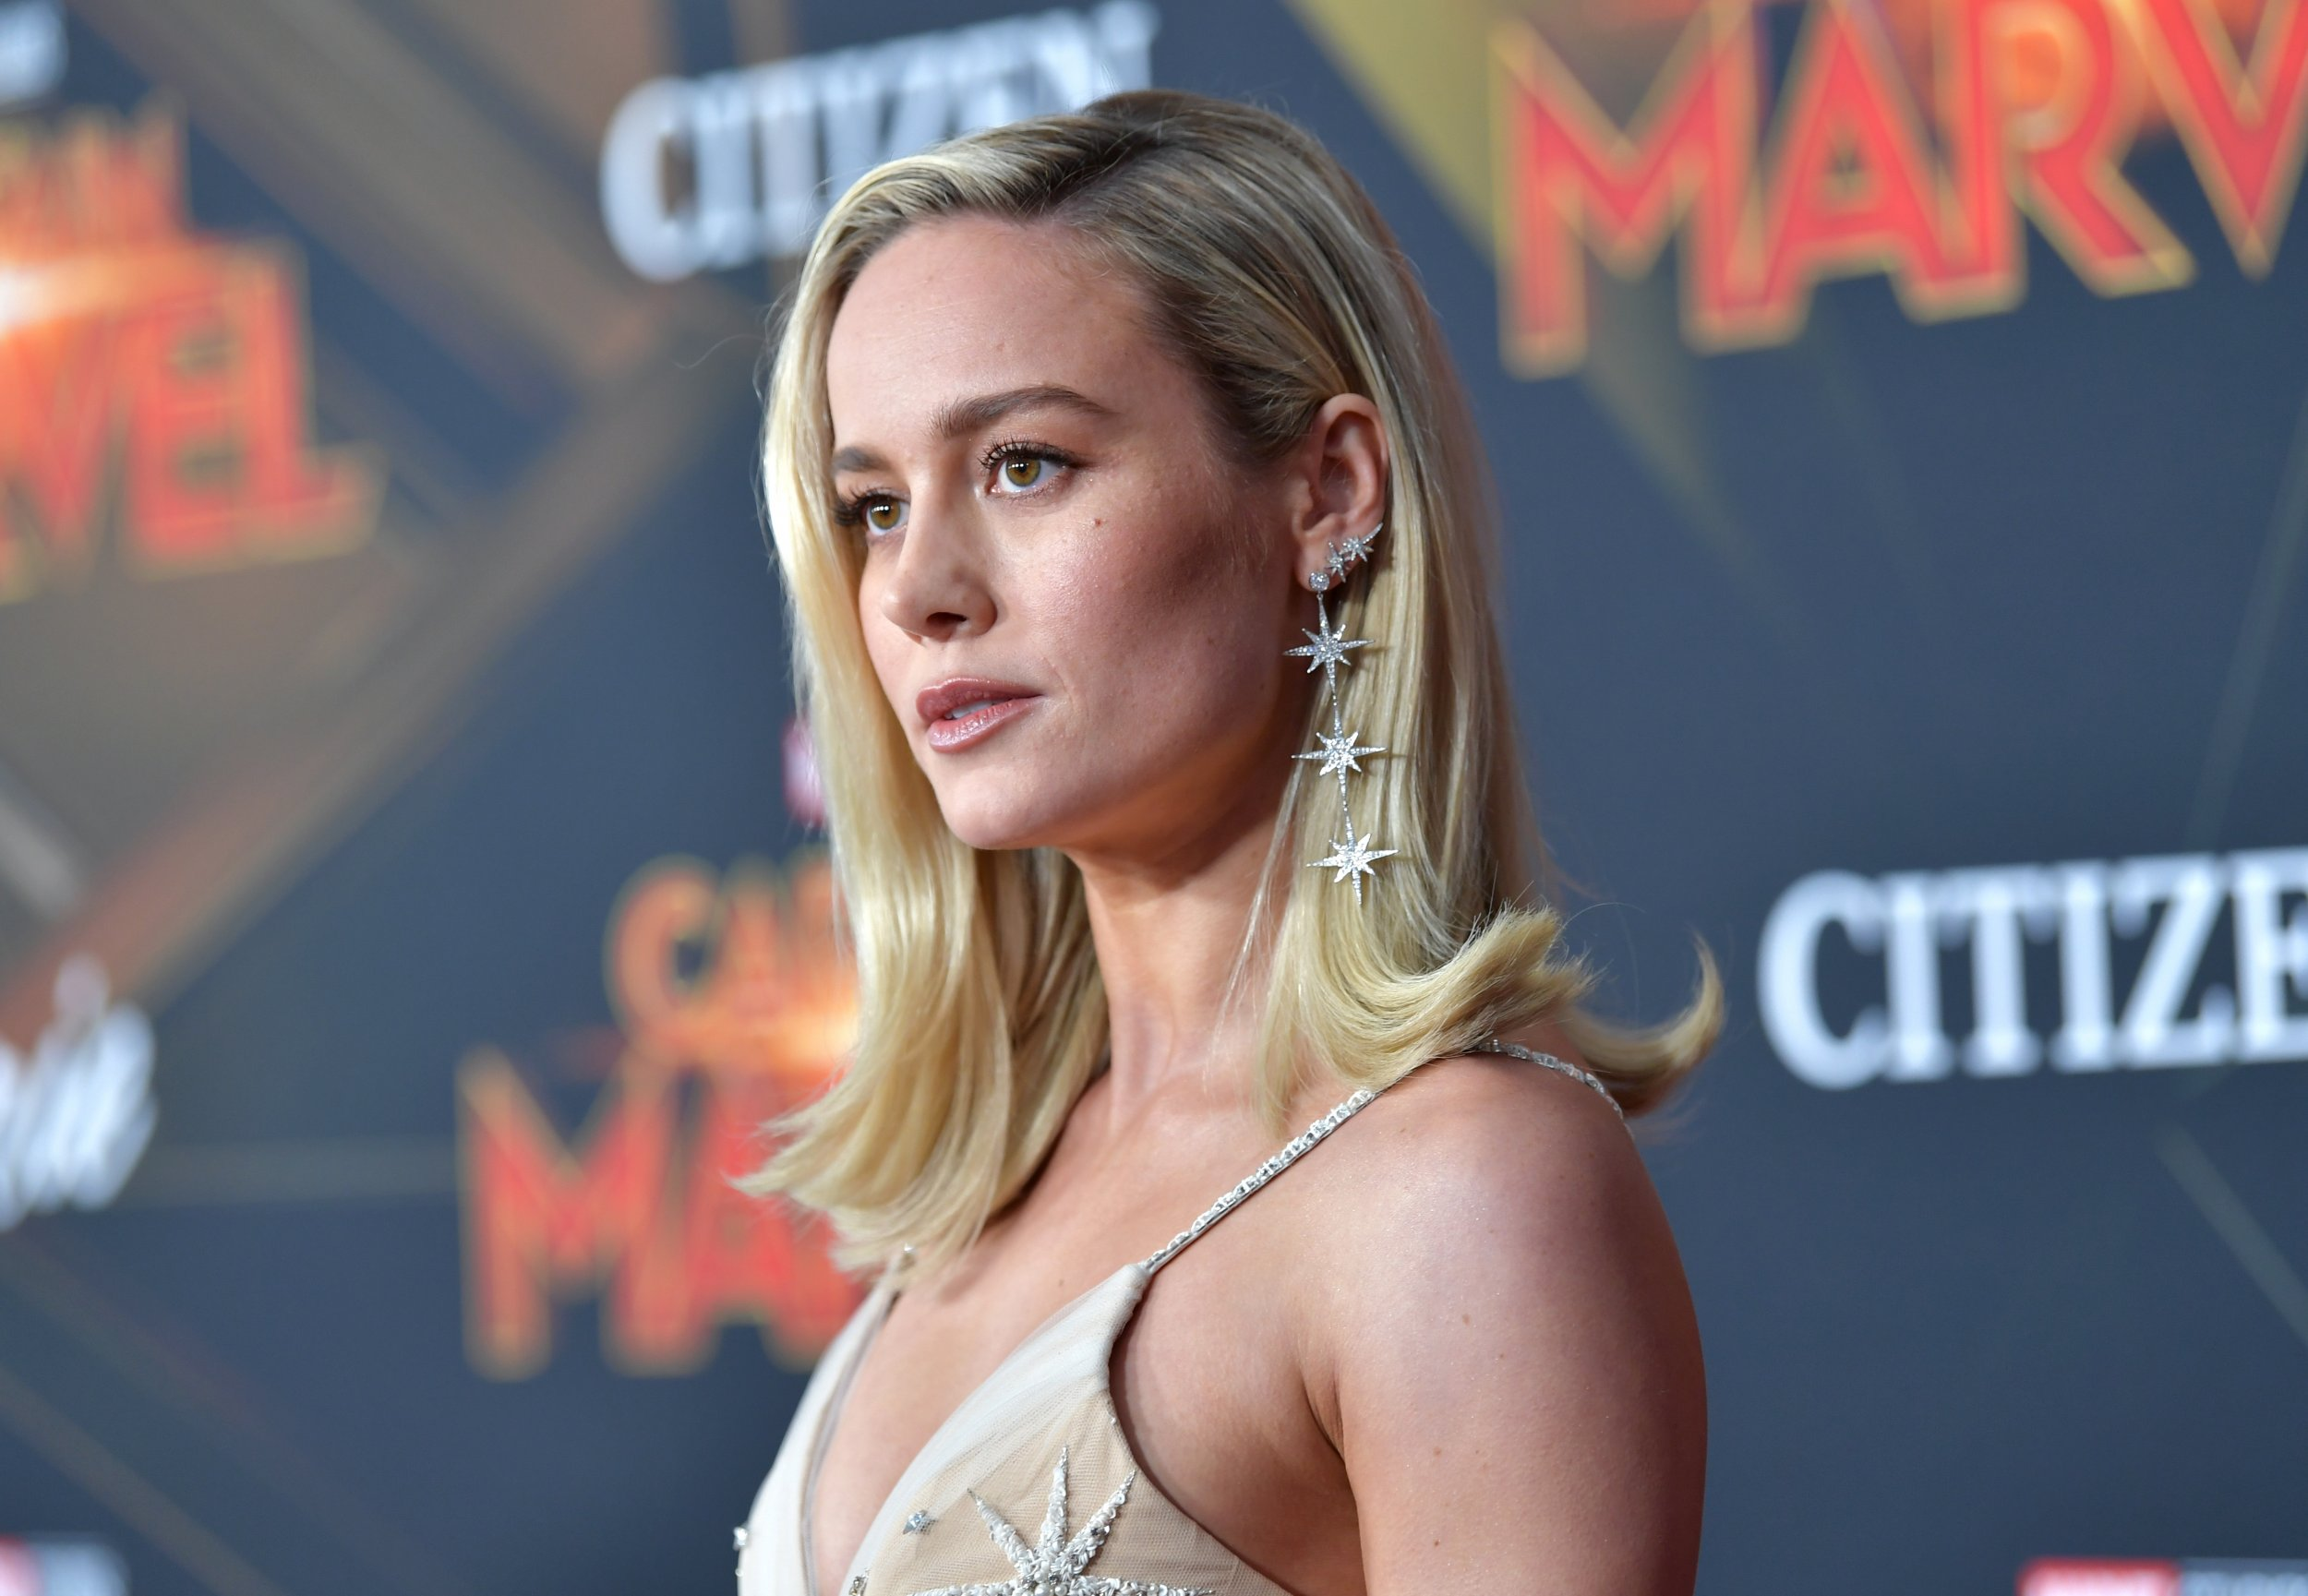 Captain Marvel fights off online trolls with $455m opening weekend